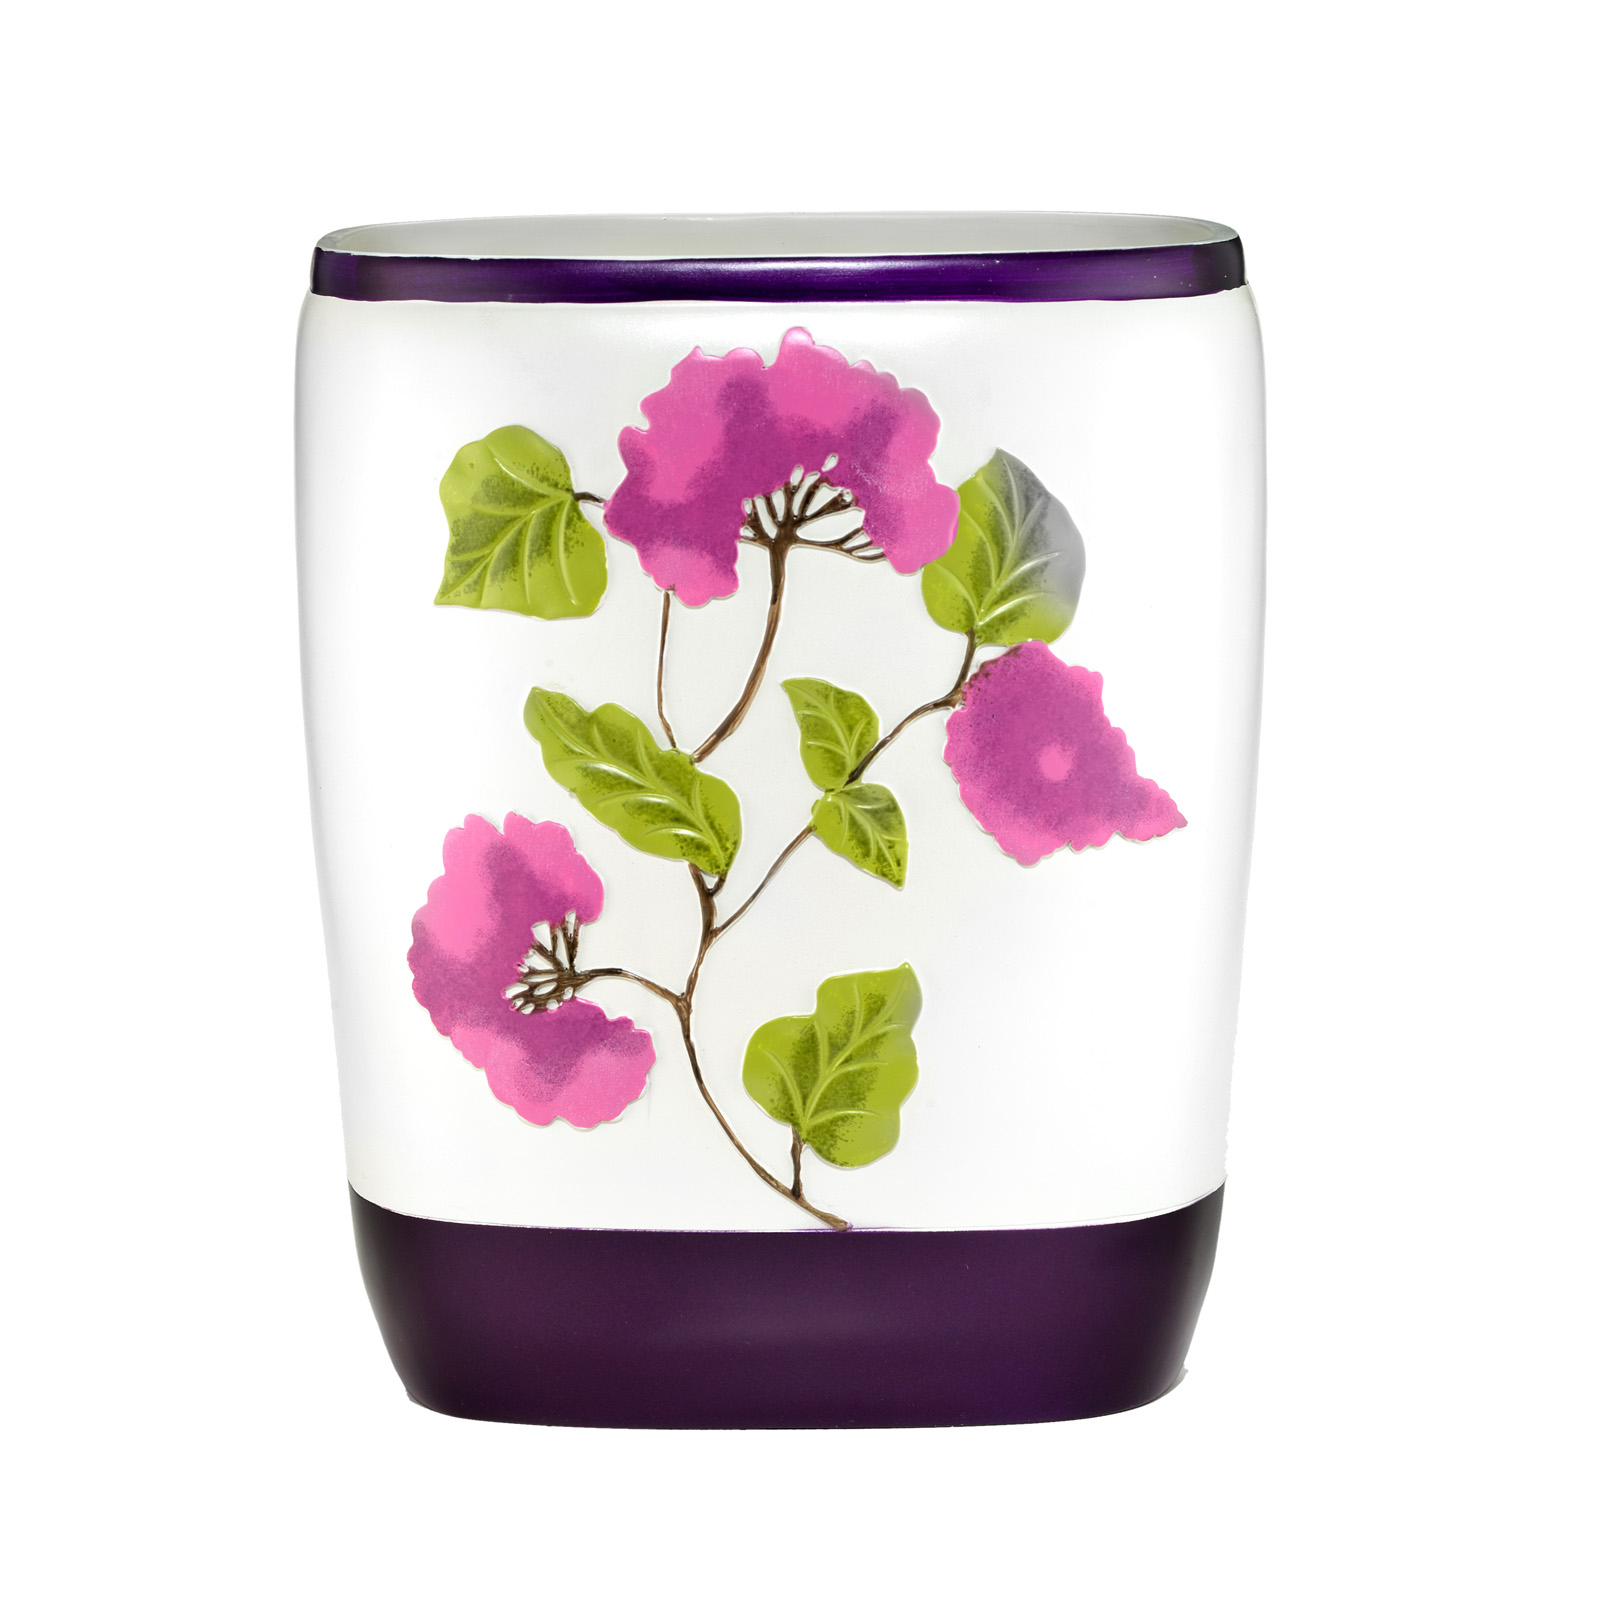 Jasmin Waste Basket, PLUM